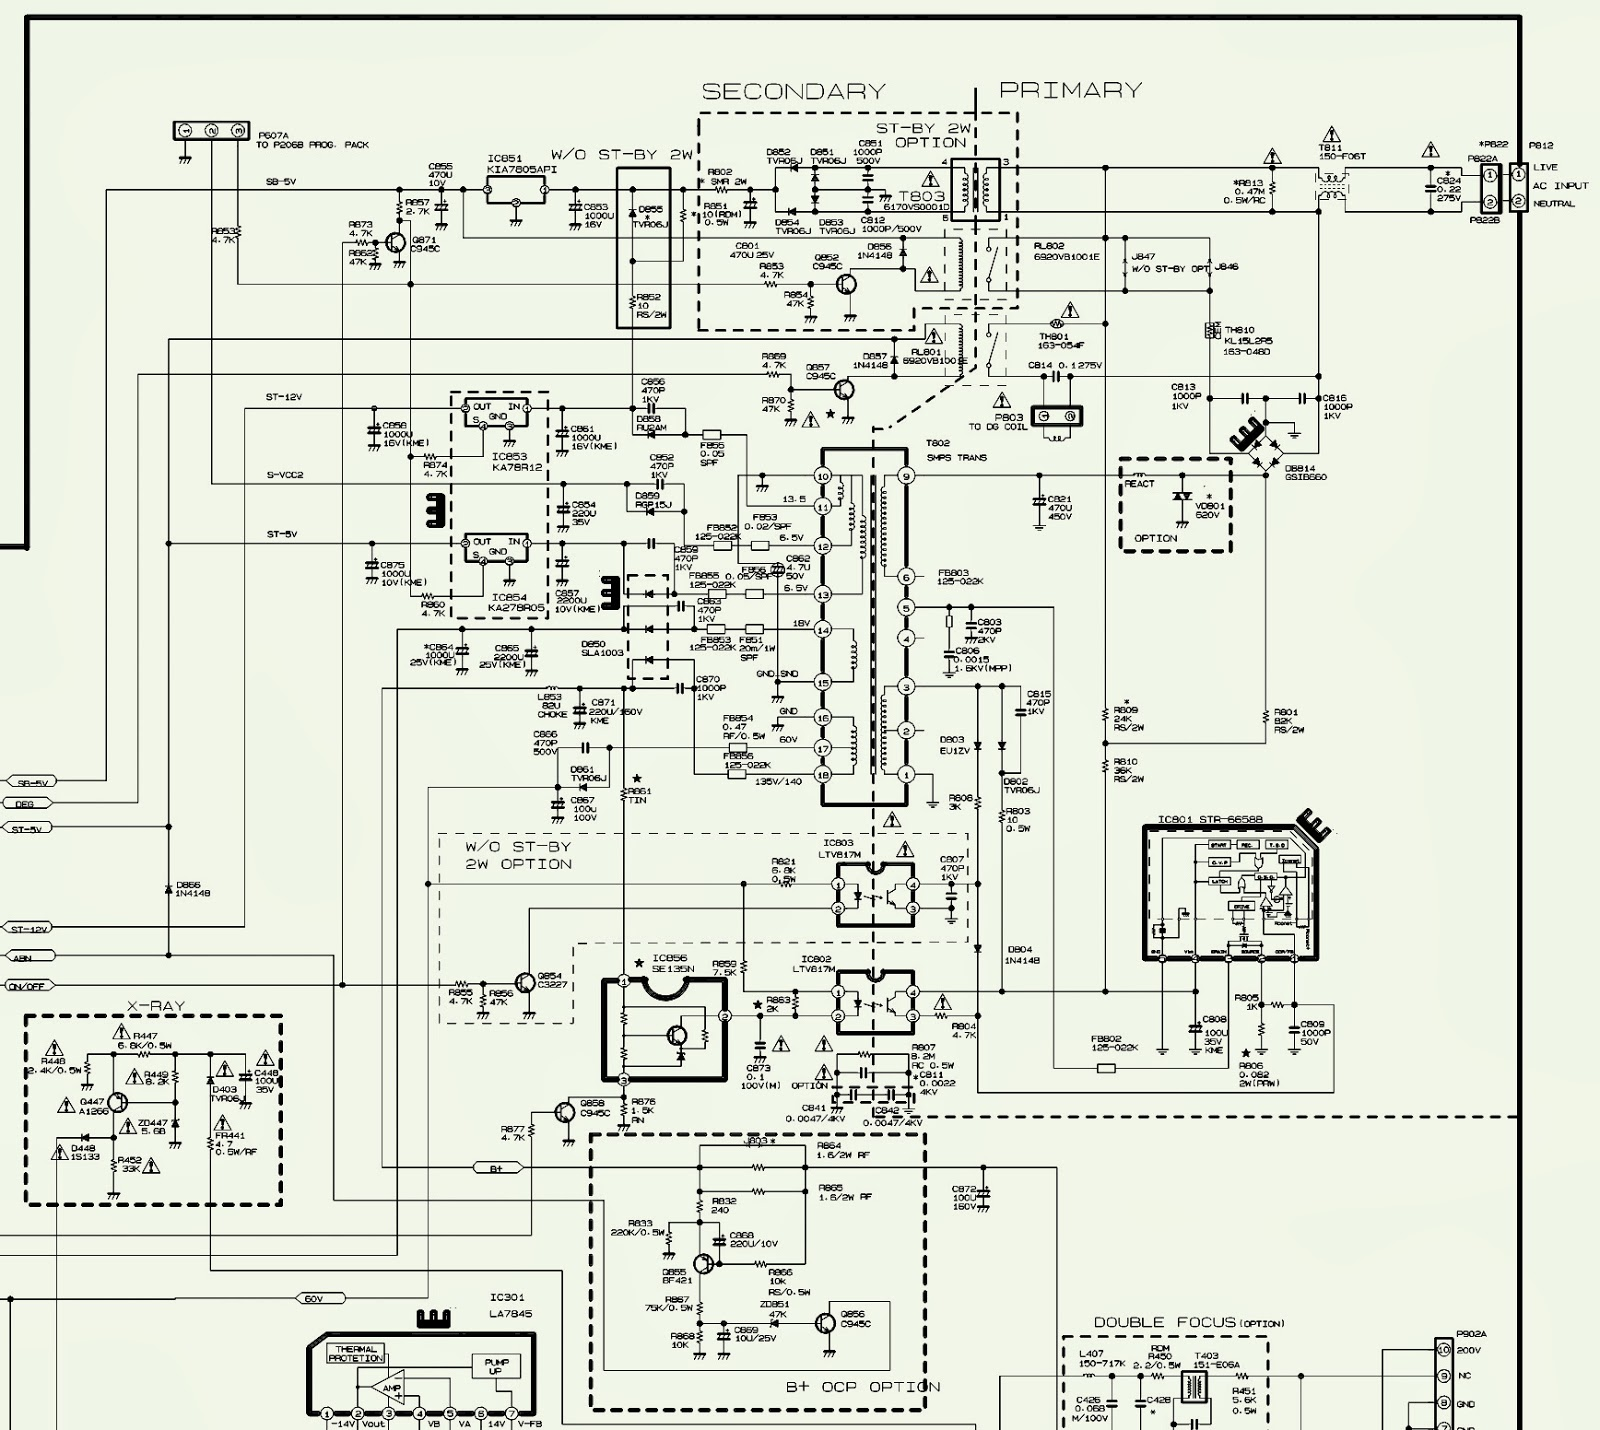 medium resolution of samsung tv power supply schematic power supply circuit diagram switch mode power supply circuit diagram also samsung microwave wiring